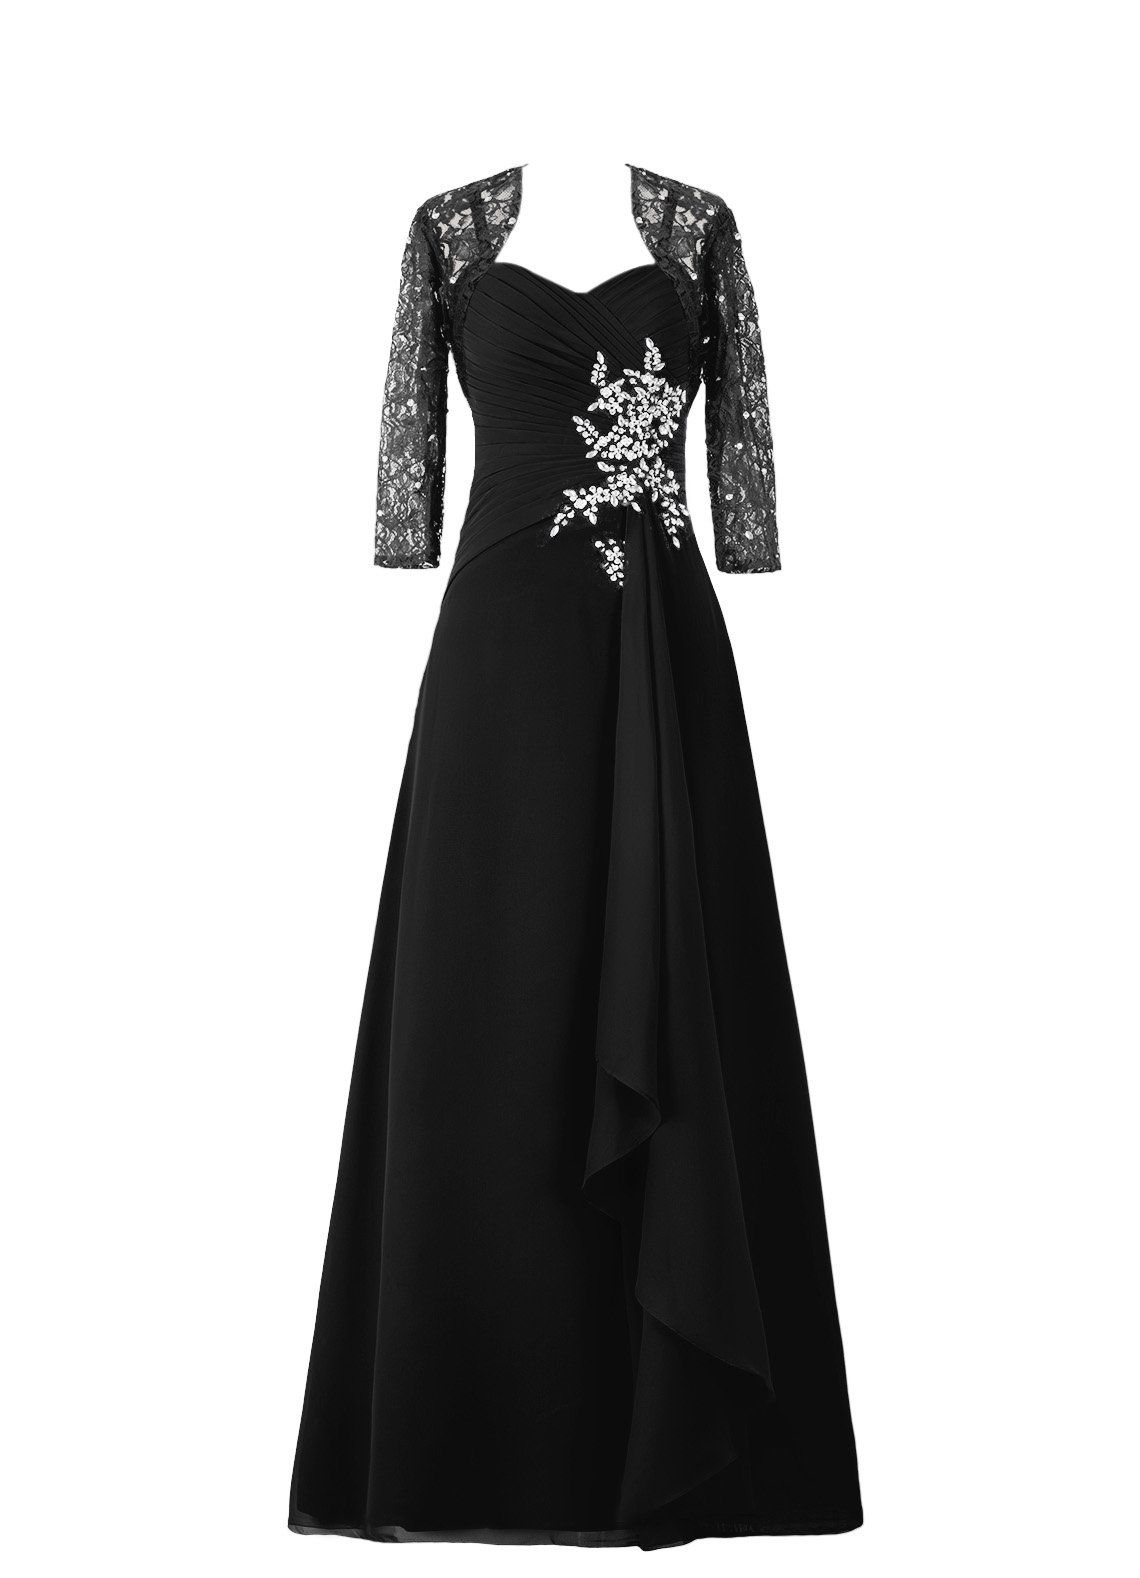 Diyouth long asymmetric lace flower sleeves mother of the bride